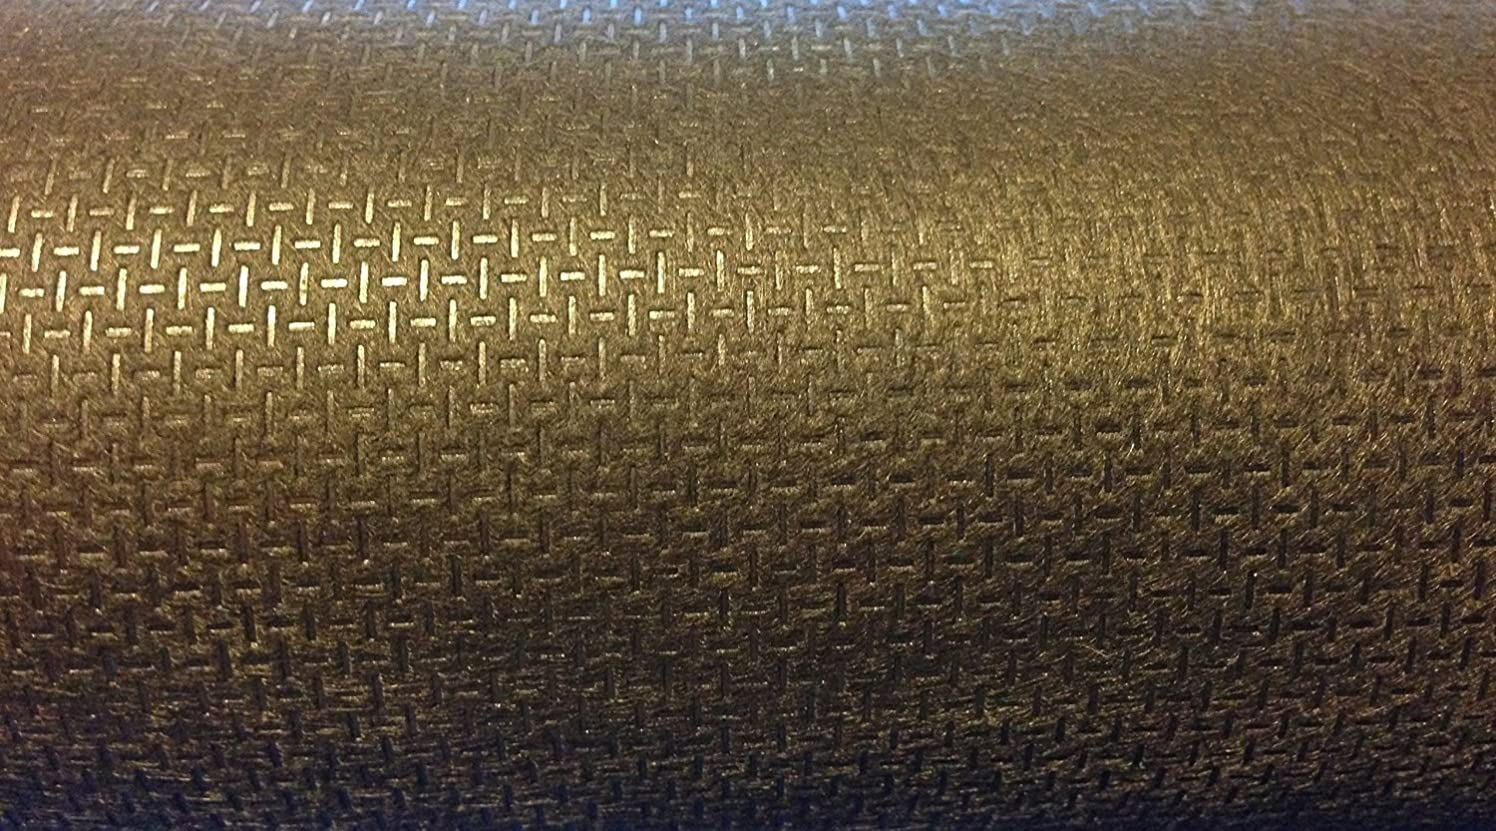 Black No-show Poly-Mesh Plus Embroidery Stabilizer & Backing Cut Away 10 Yard Roll (12 Inches x 10 Yards)